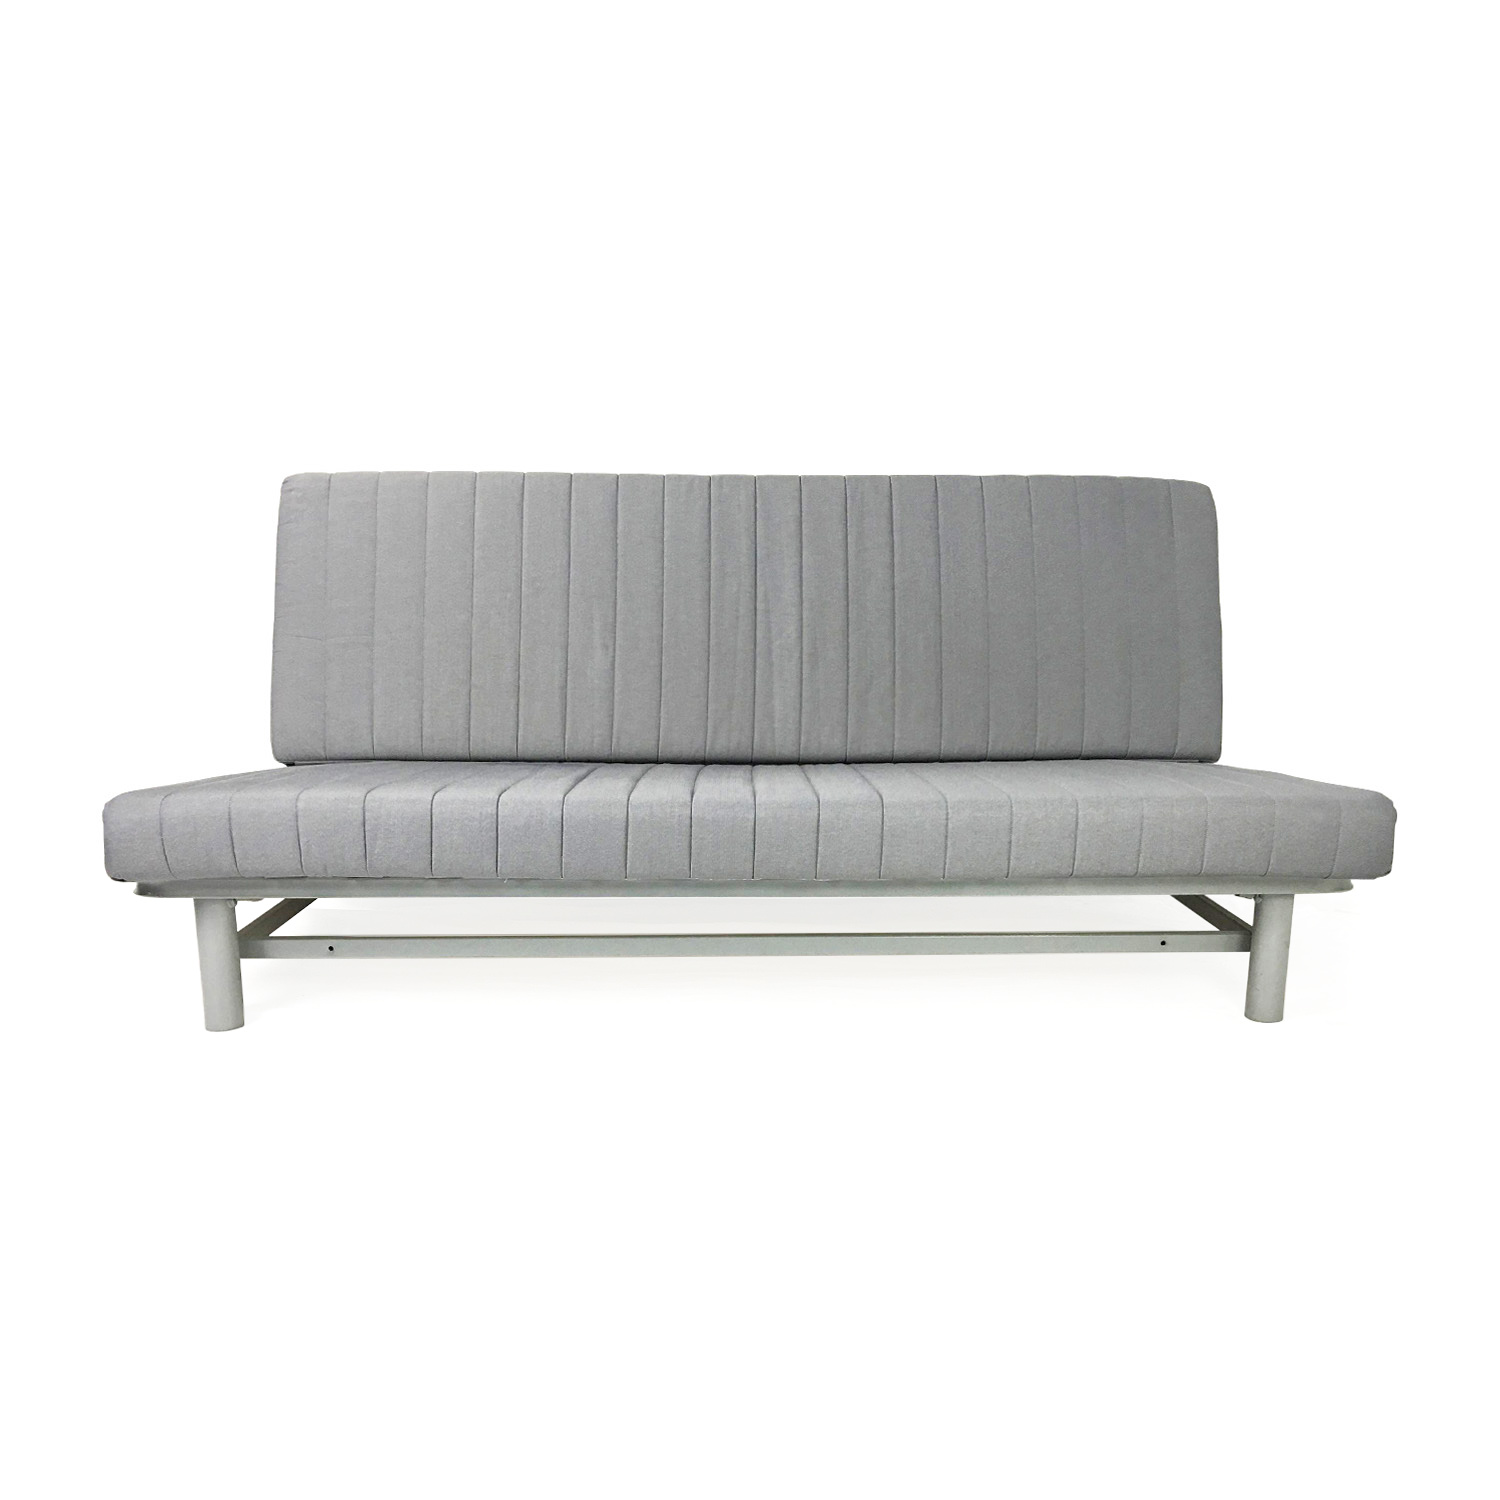 Ikea bed sofas backabro sofa bed with chaise longue ramna for Ikea divan